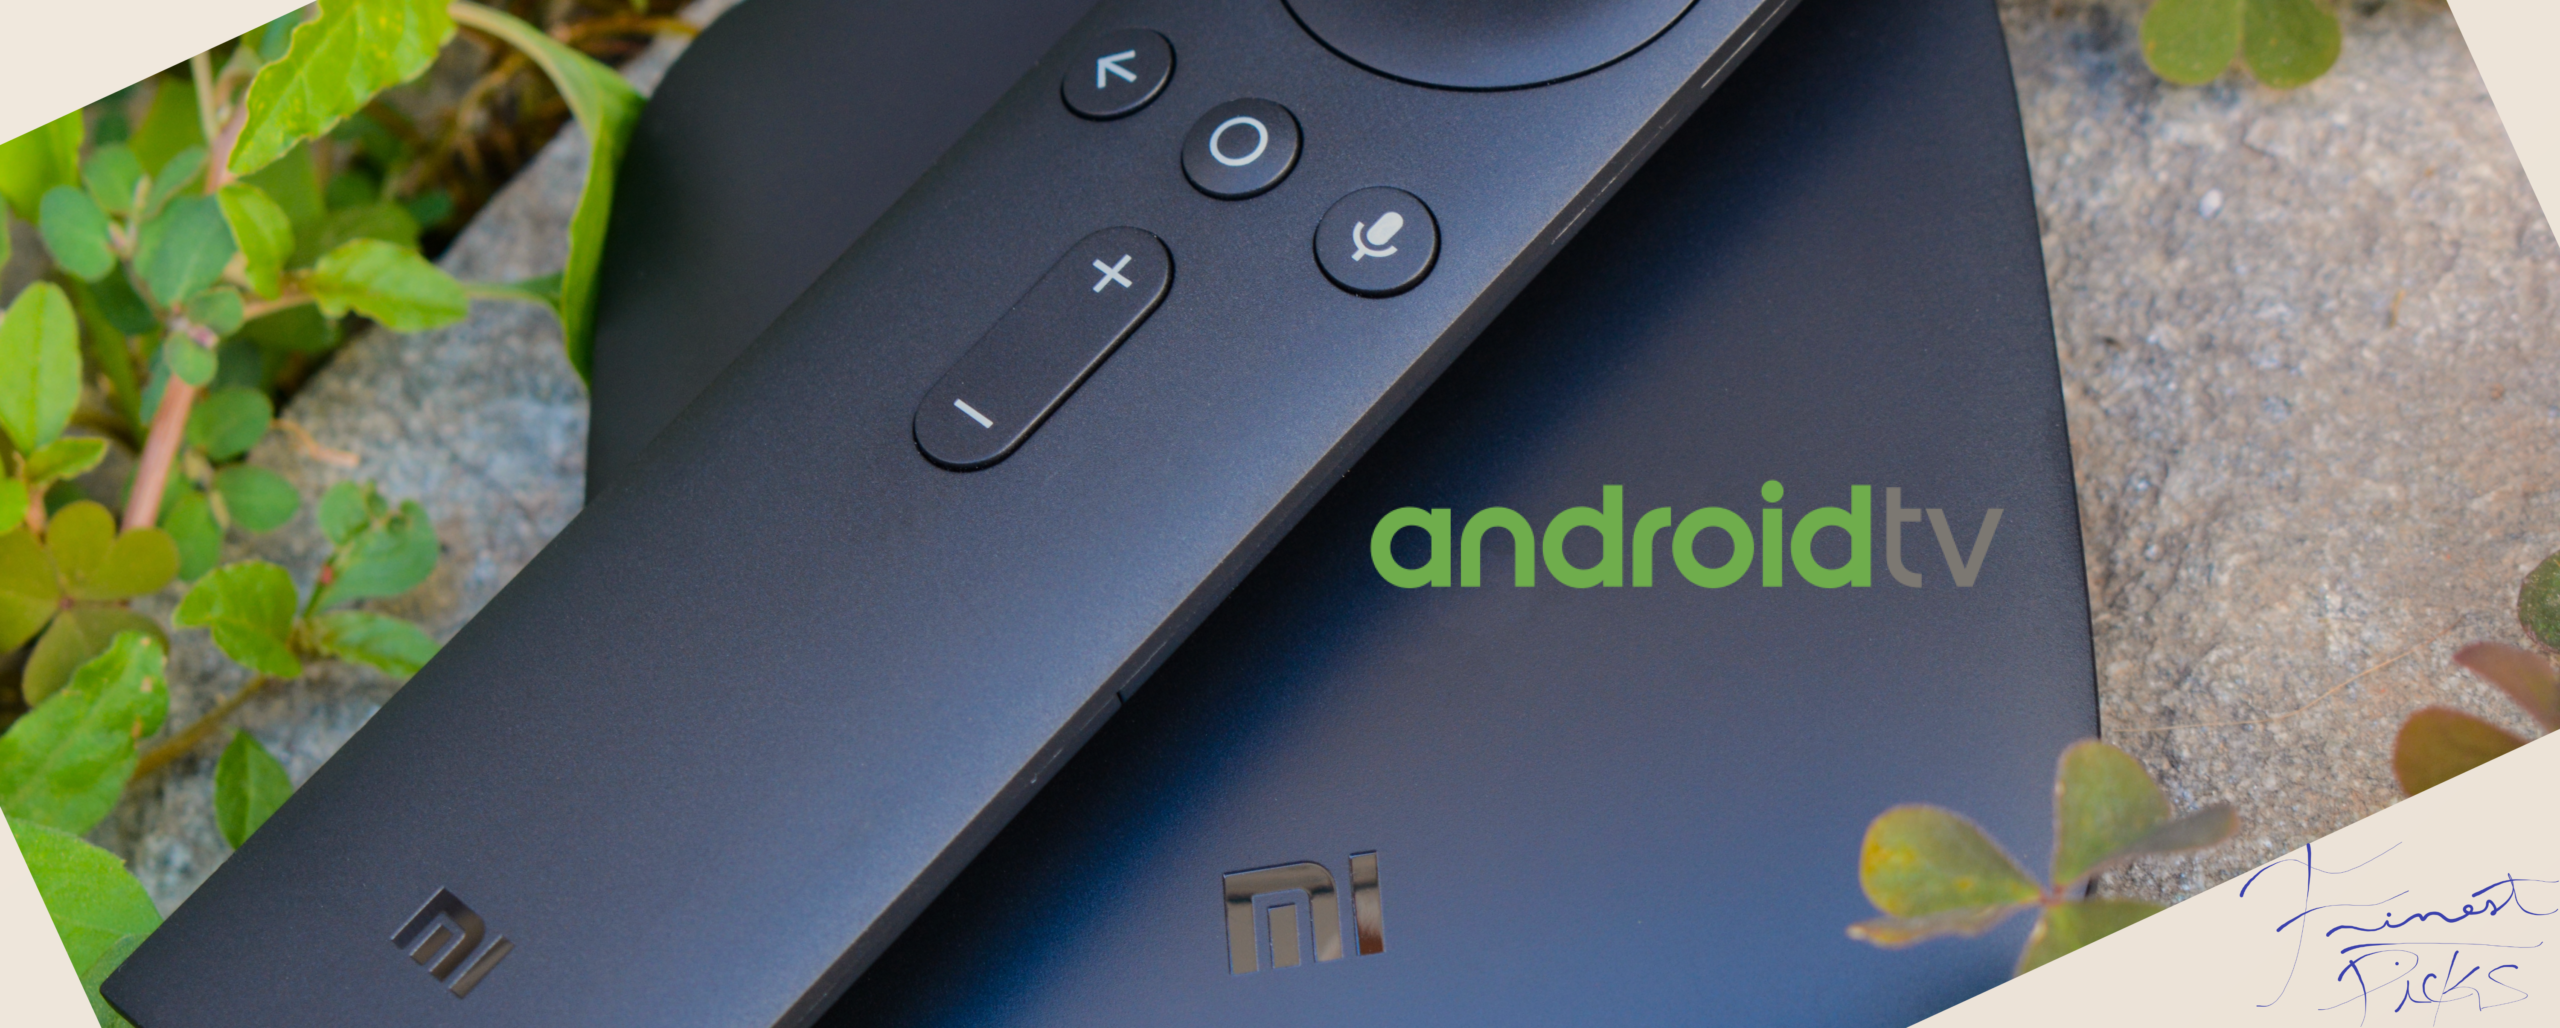 What Is Android Tv An Amazing Home Entertainment Alternative In 2020 Finest Picks